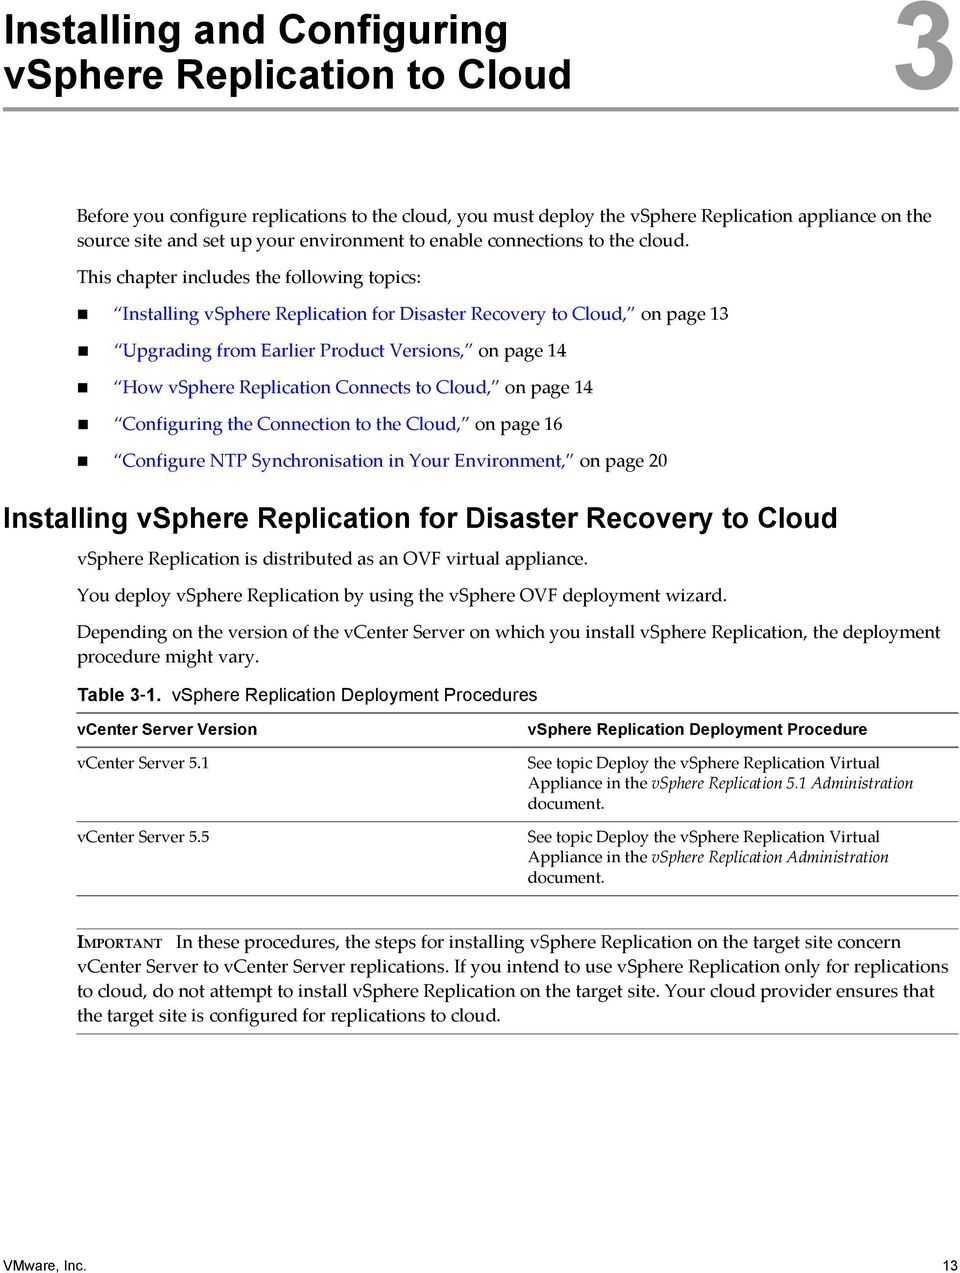 This chapter includes the following topics: Installing vsphere Replication for Disaster Recovery to Cloud, on page 13 Upgrading from Earlier Product Versions, on page 14 How vsphere Replication